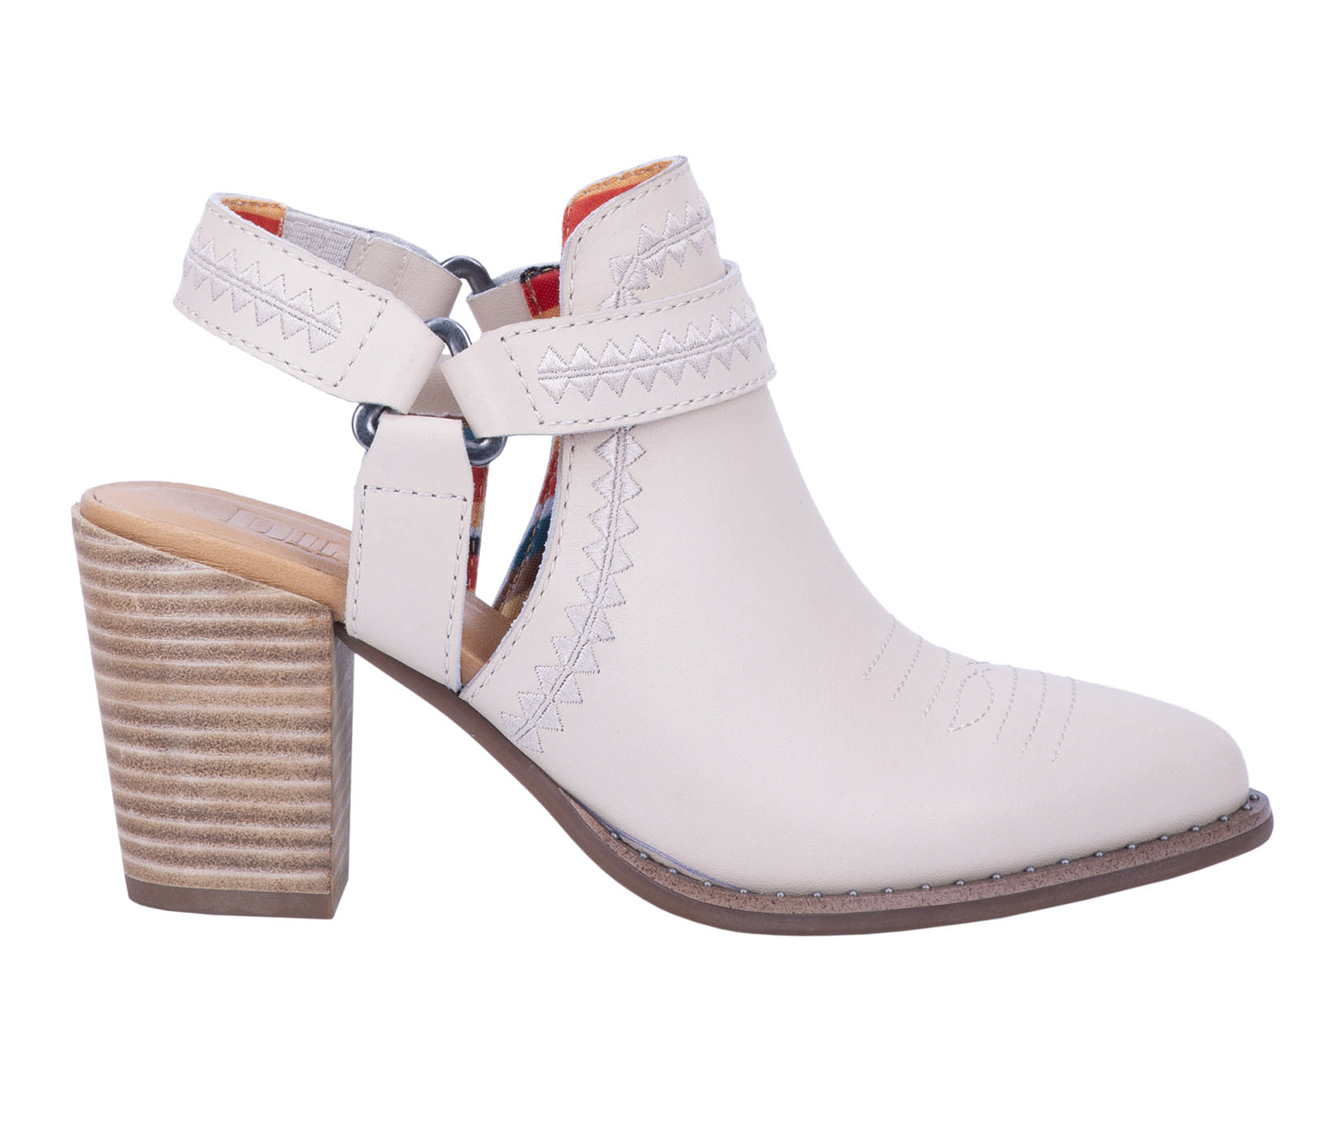 Dingo Boots Concho Women's Boots (White - Leather)